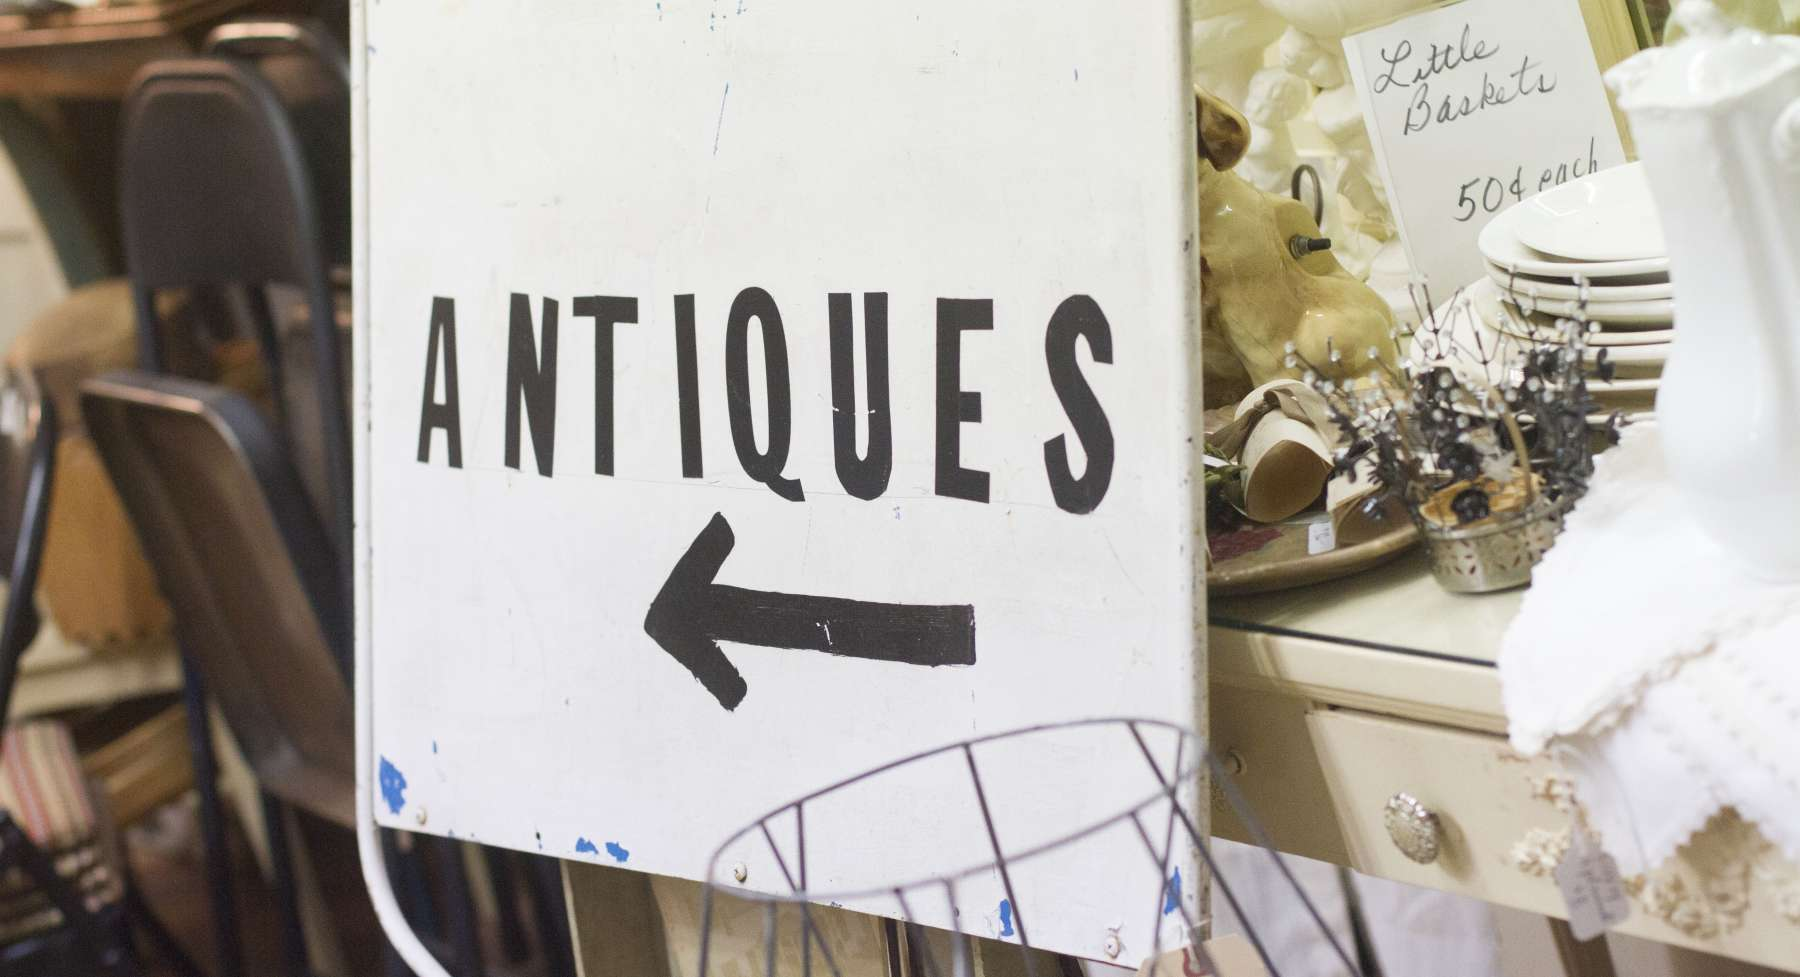 Downtown Shopping - Antiques